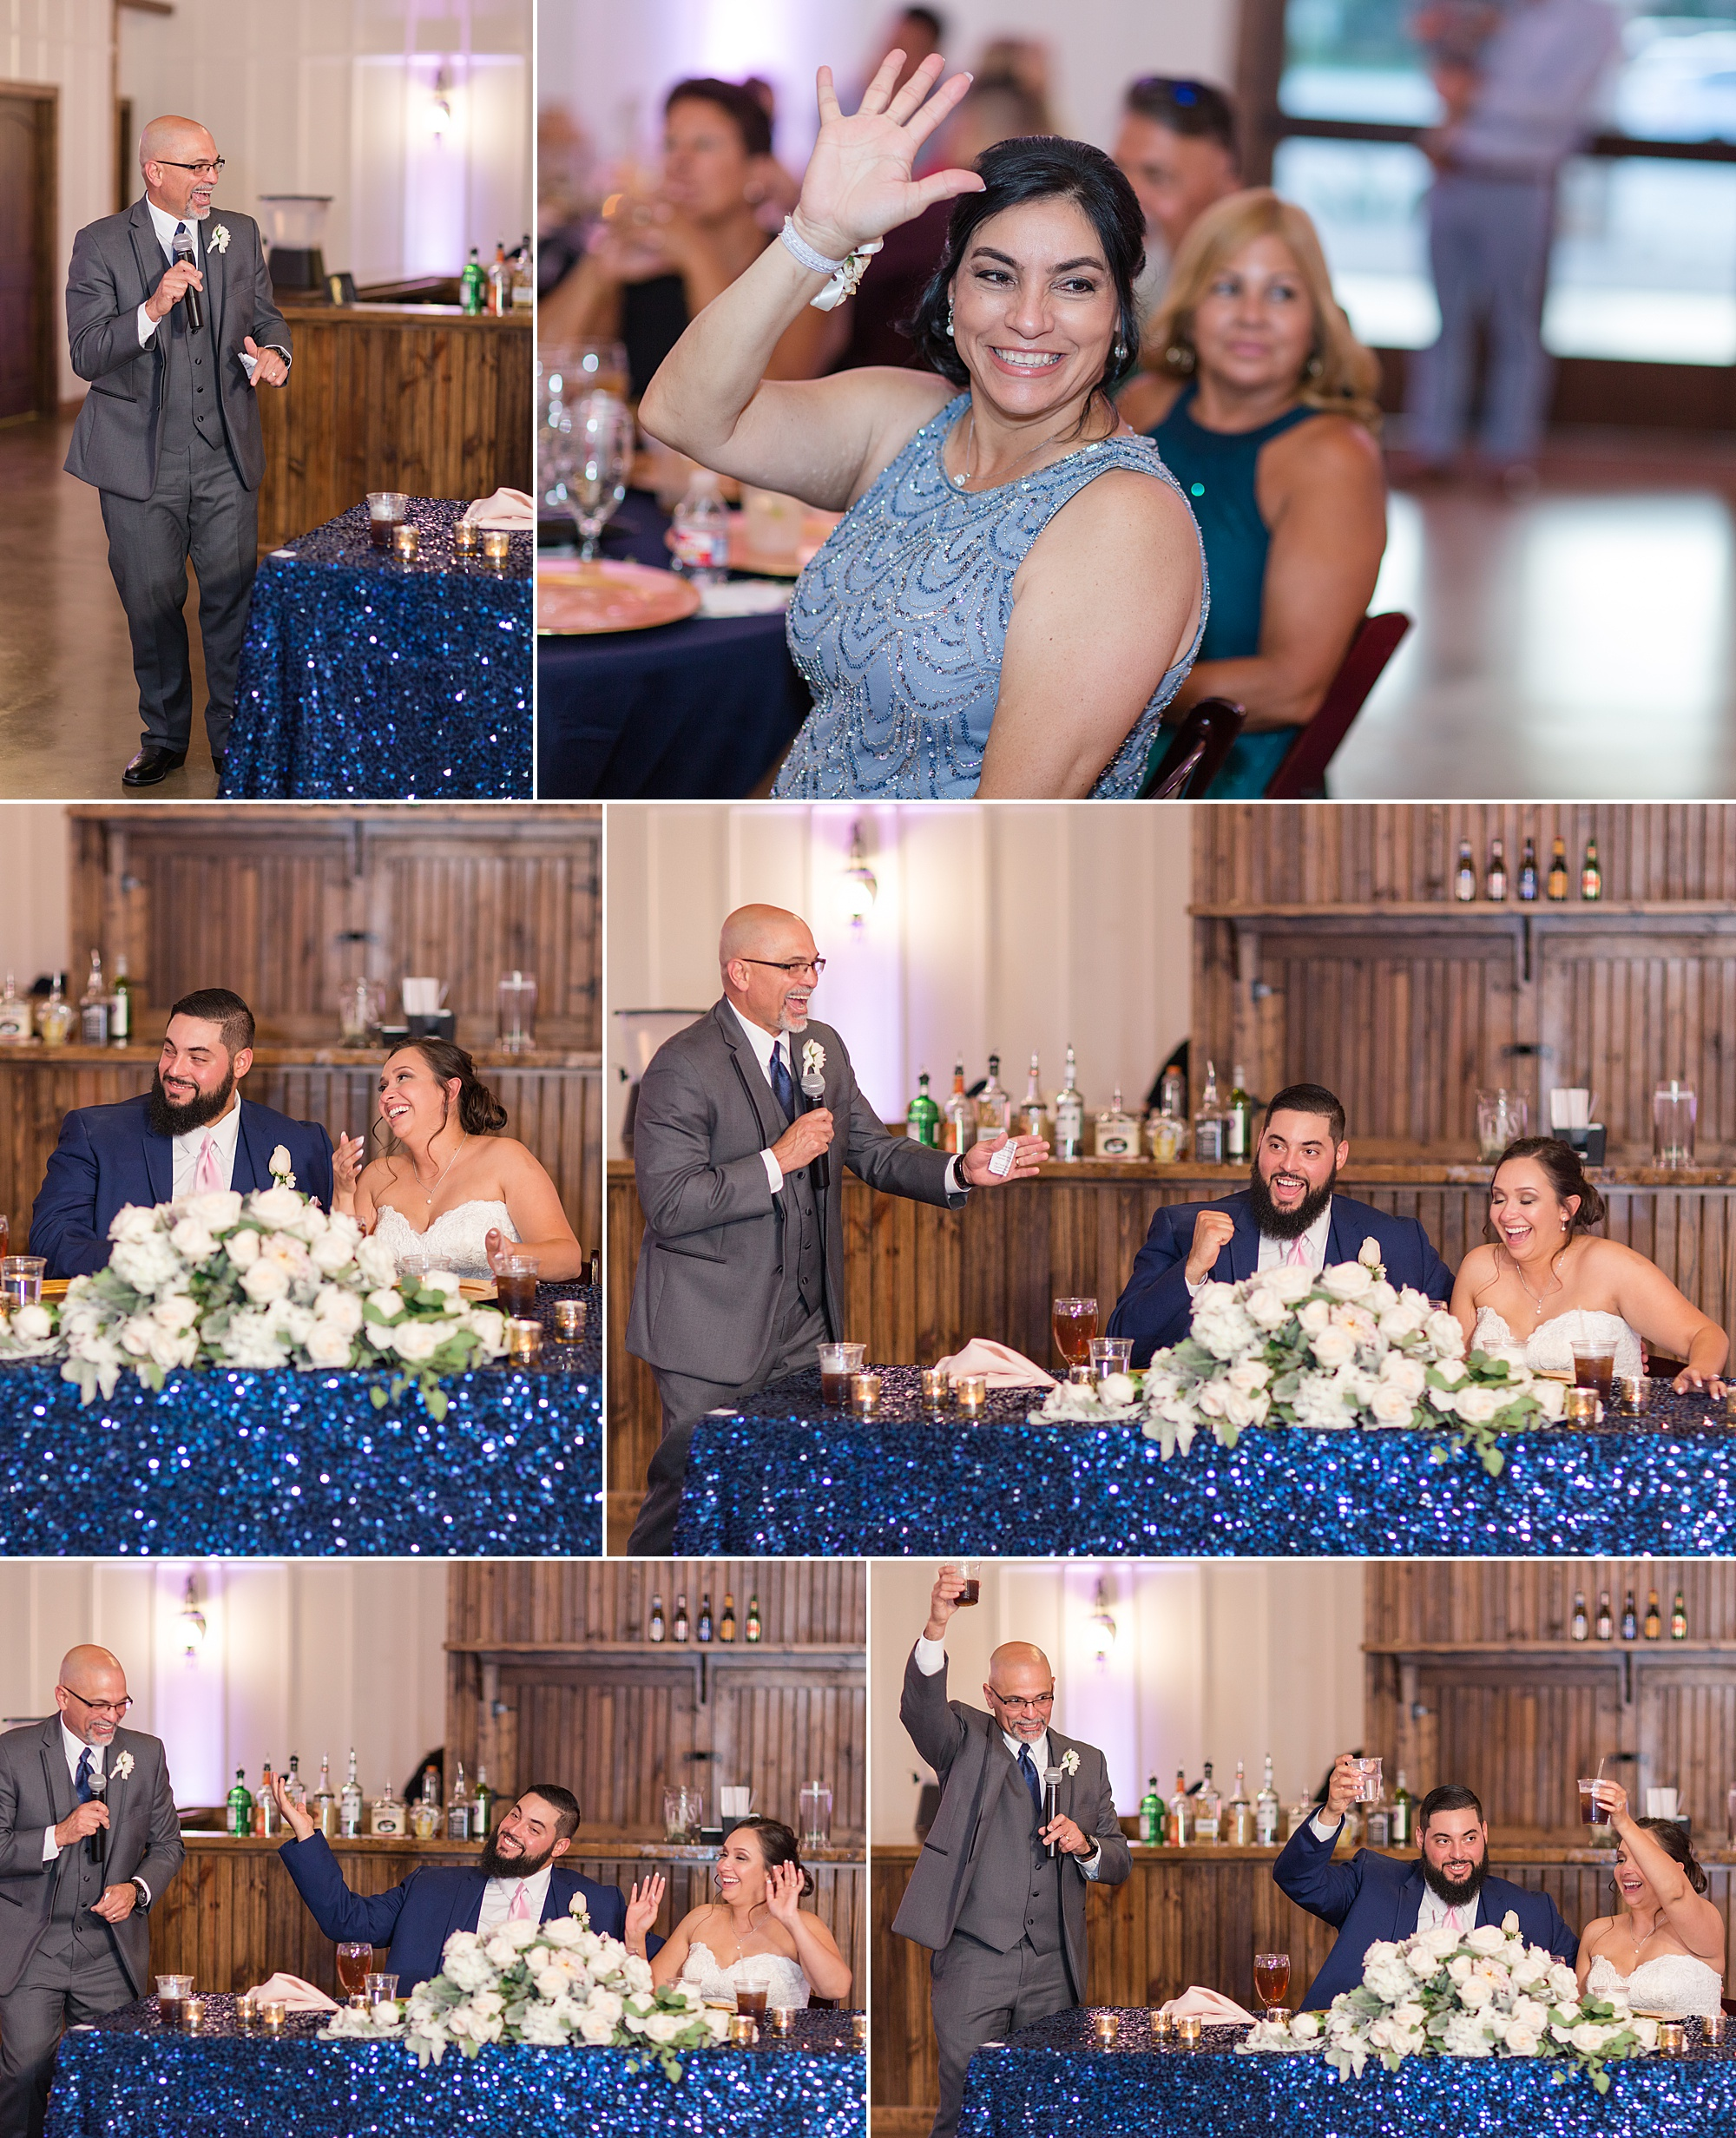 Wedding-Photographer-Bulverde-Texas-Western-Sky-Event-Venue-Carly-Barton-Photography_0072.jpg